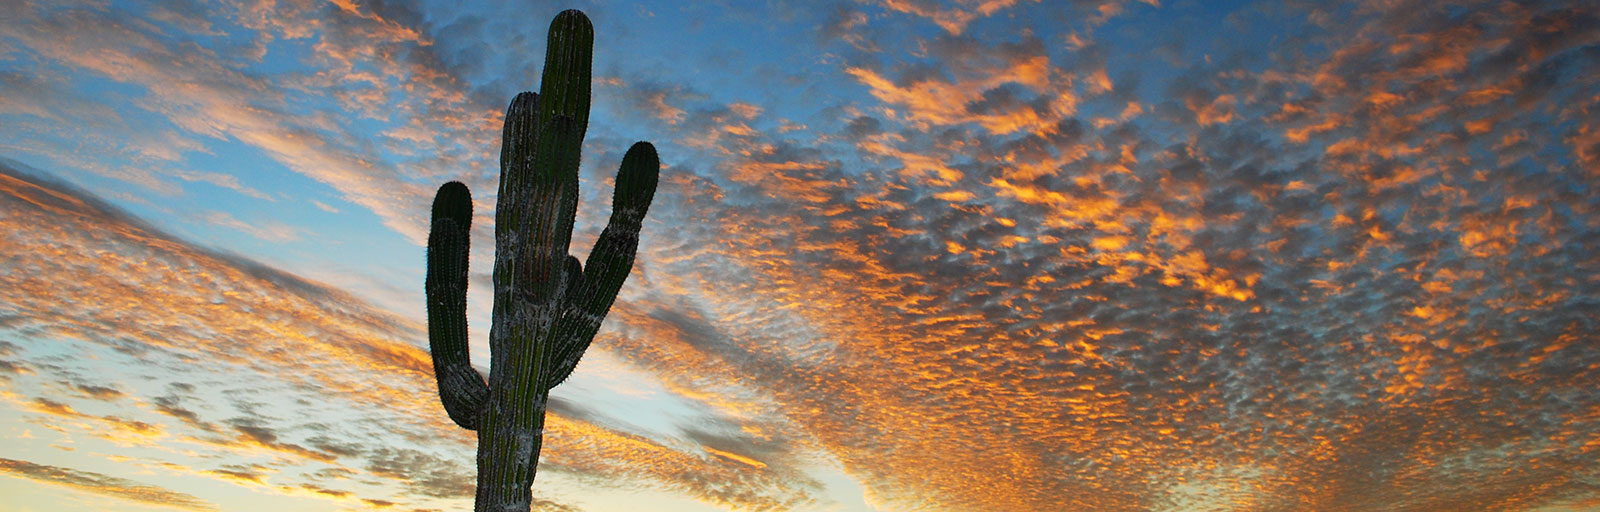 Meditation & Yoga Retreats in Mexico: Sunset with Cardon Cactus